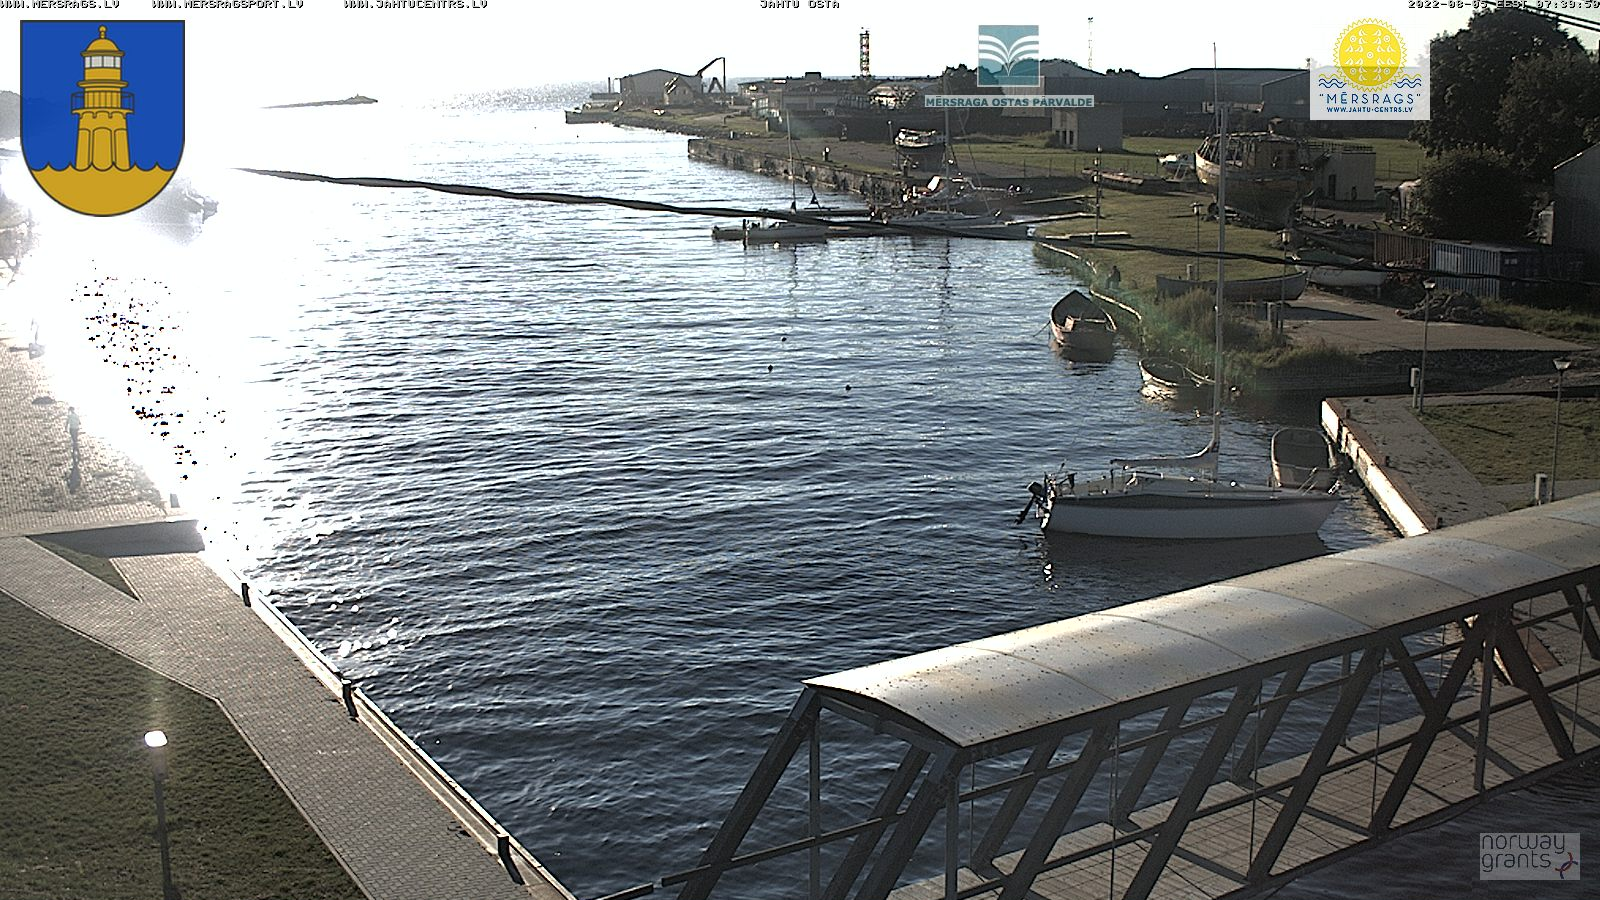 Webcam in port of Mersrags